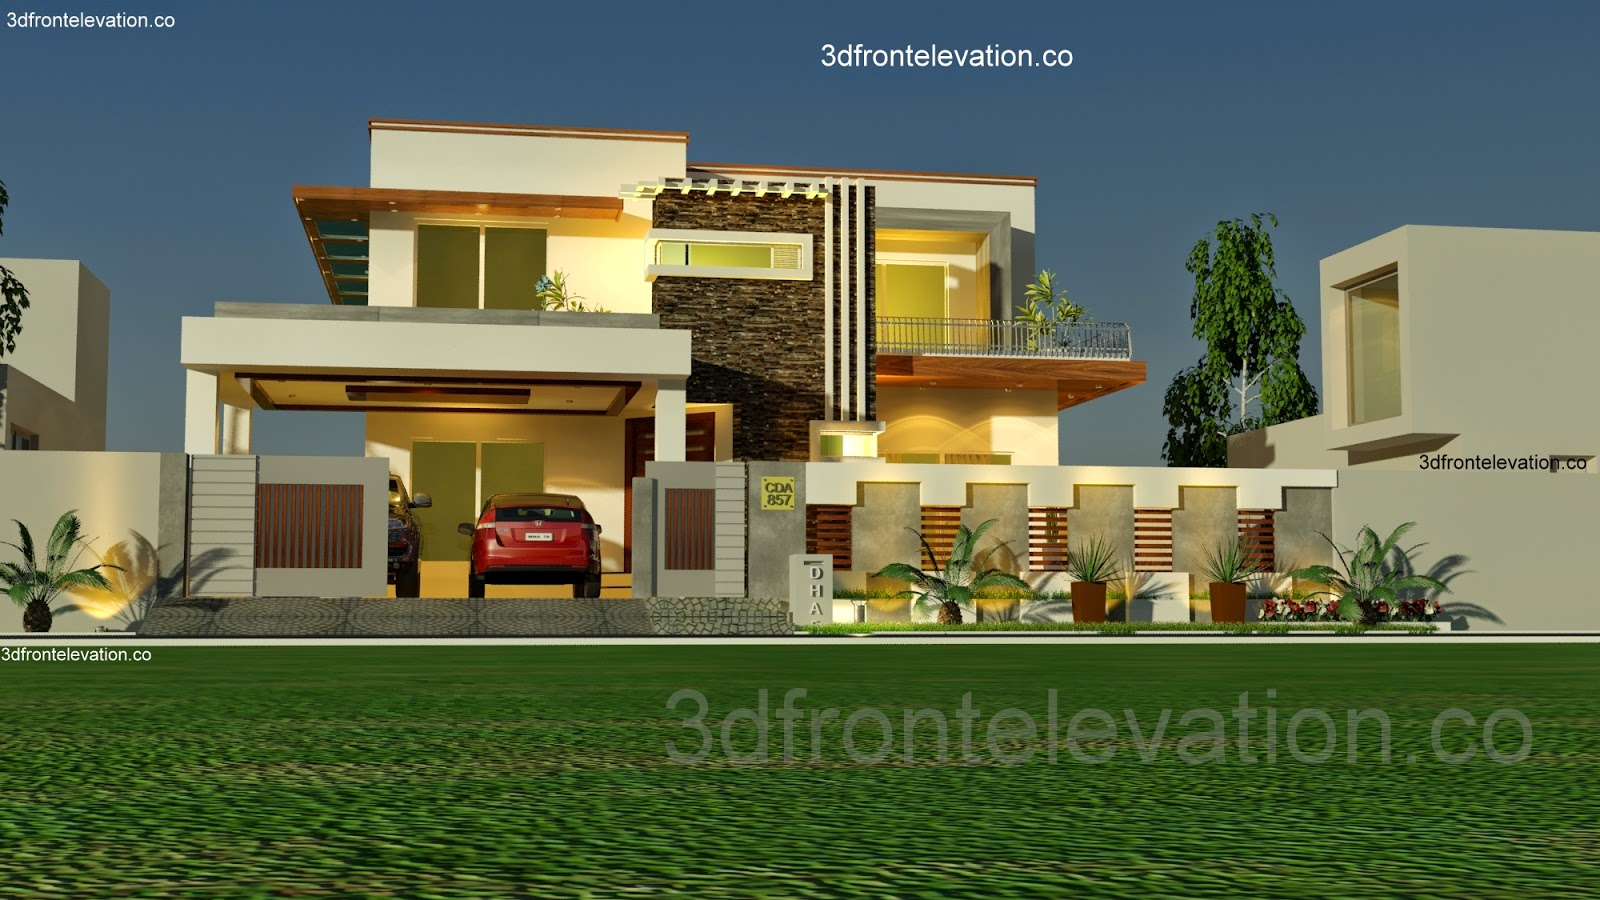 House design karachi - 2 Storey House Designs And Floor Plans